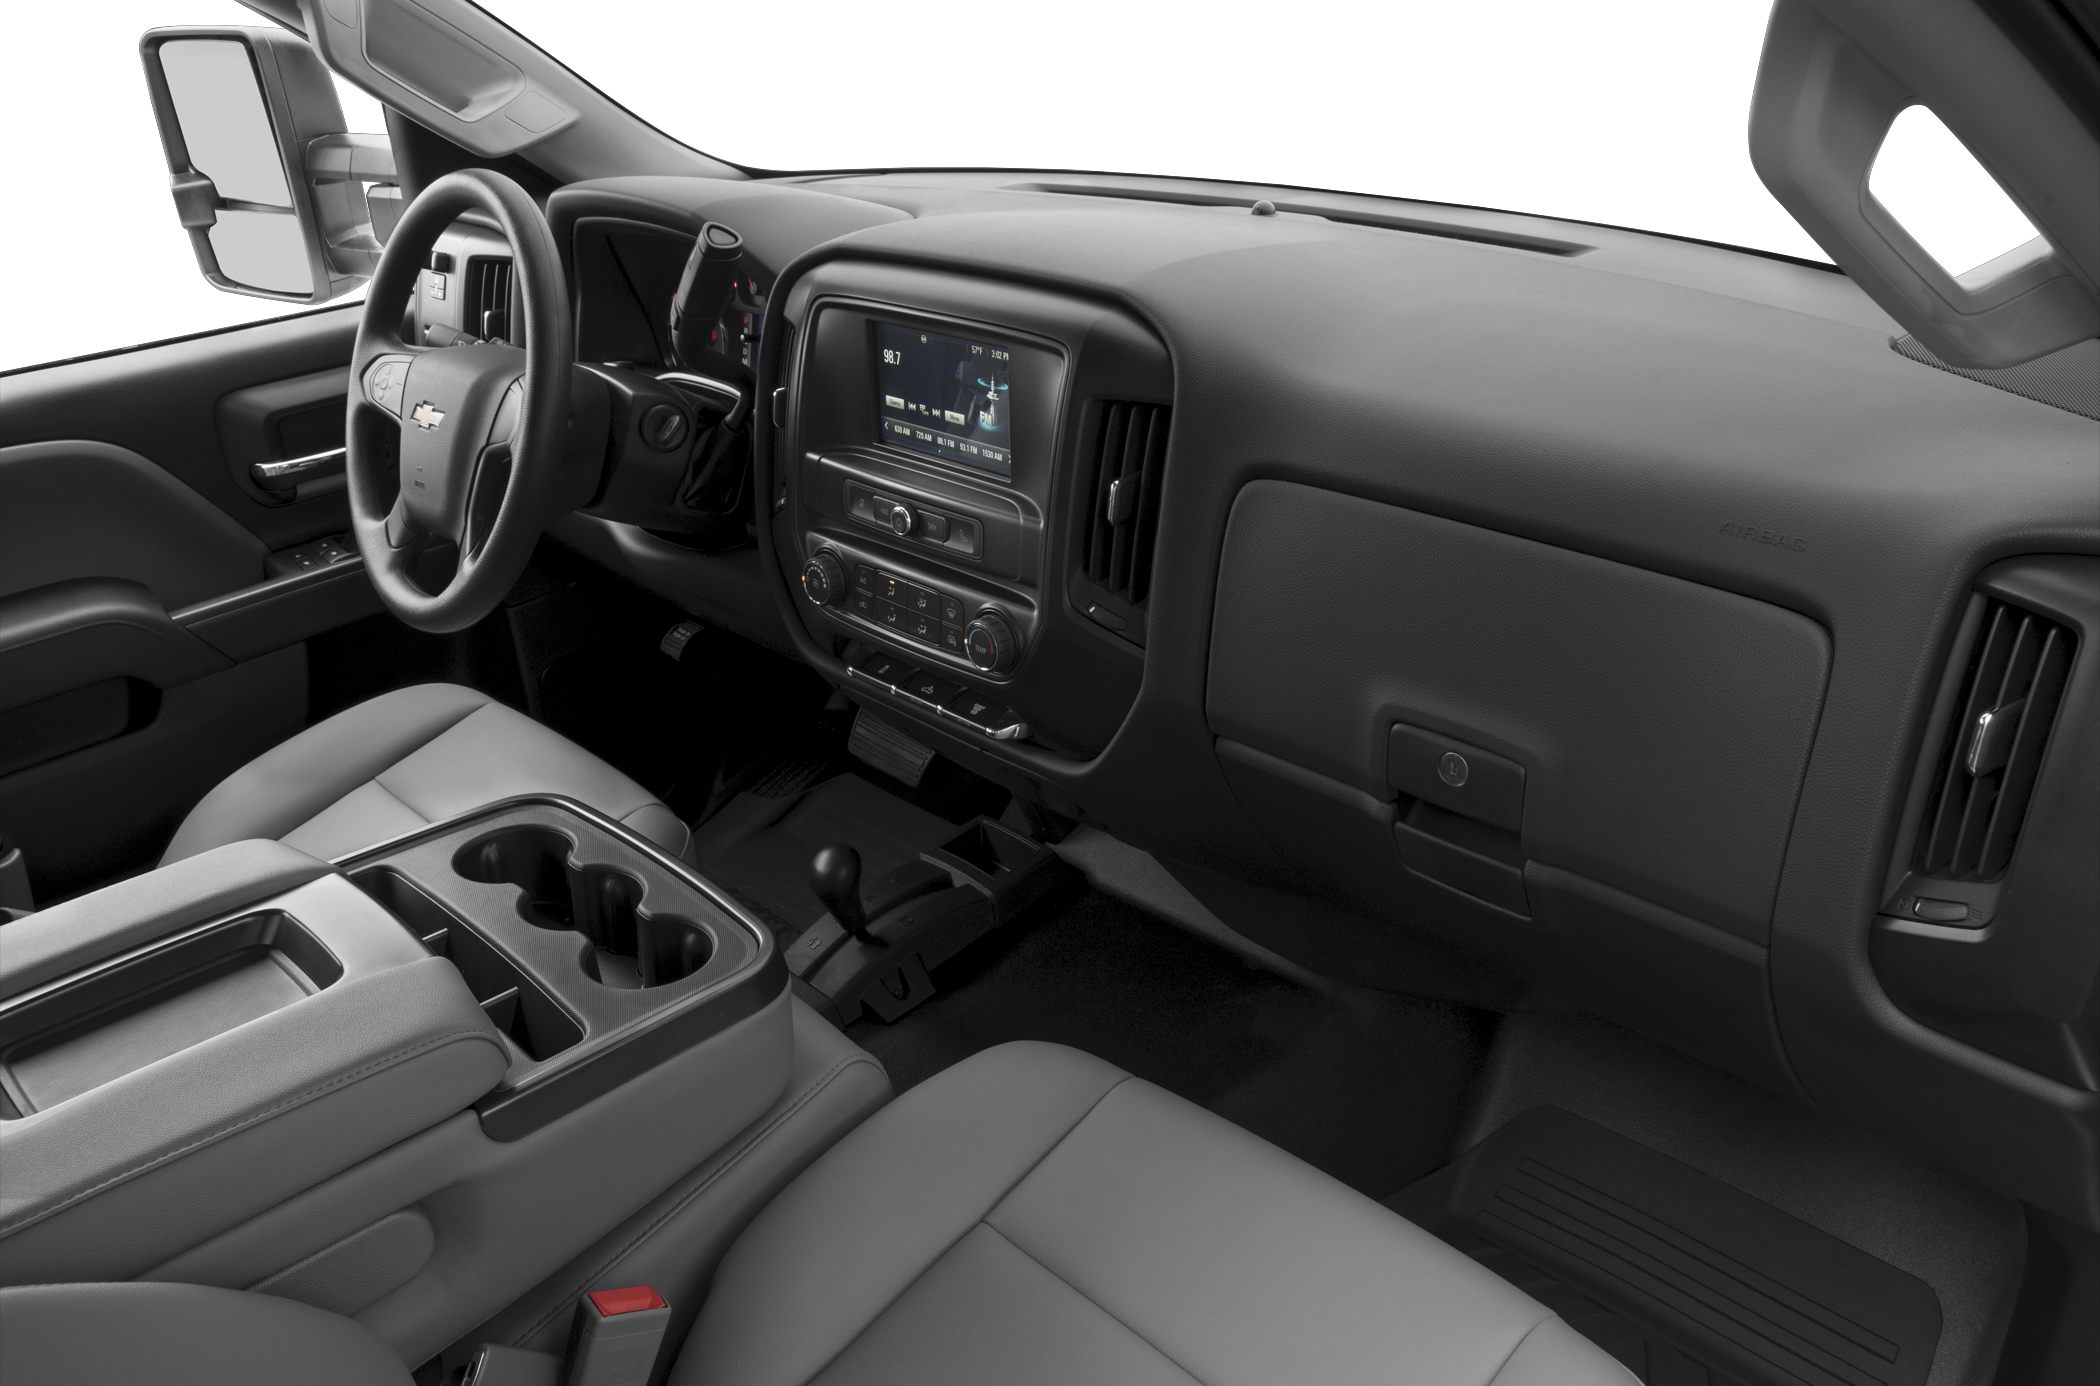 2017 chevrolet silverado 2500hd wt cars and vehicles west union sc. Black Bedroom Furniture Sets. Home Design Ideas